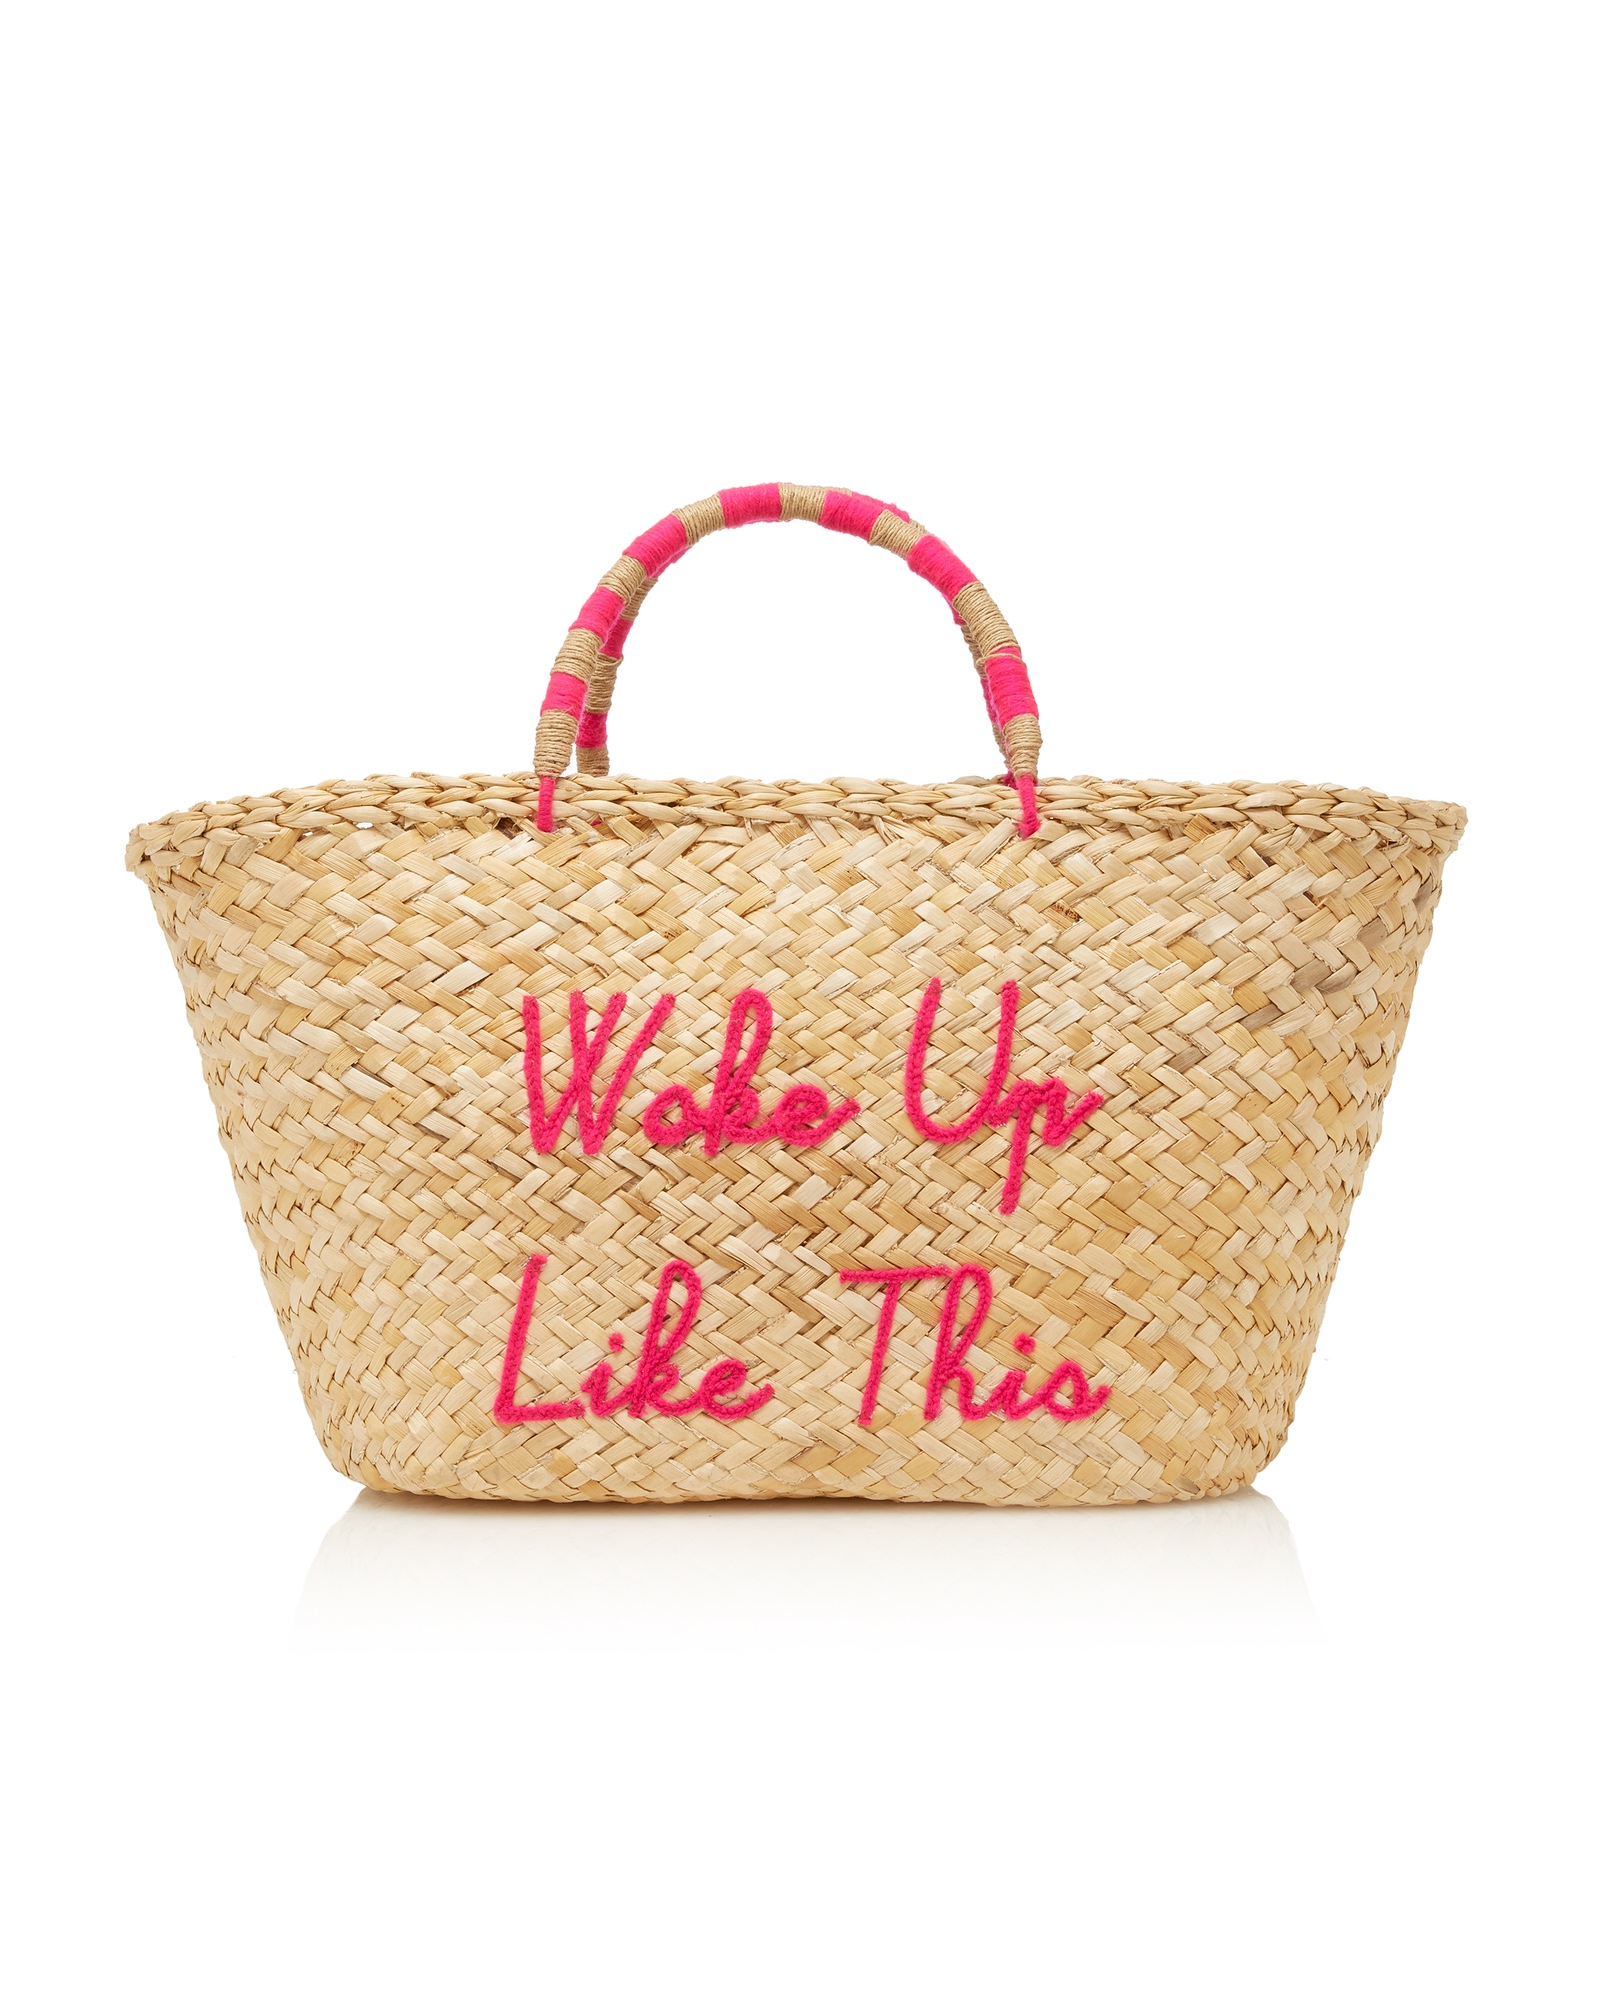 Pink We Are Poolside Suprette Woke Up Like This Bag